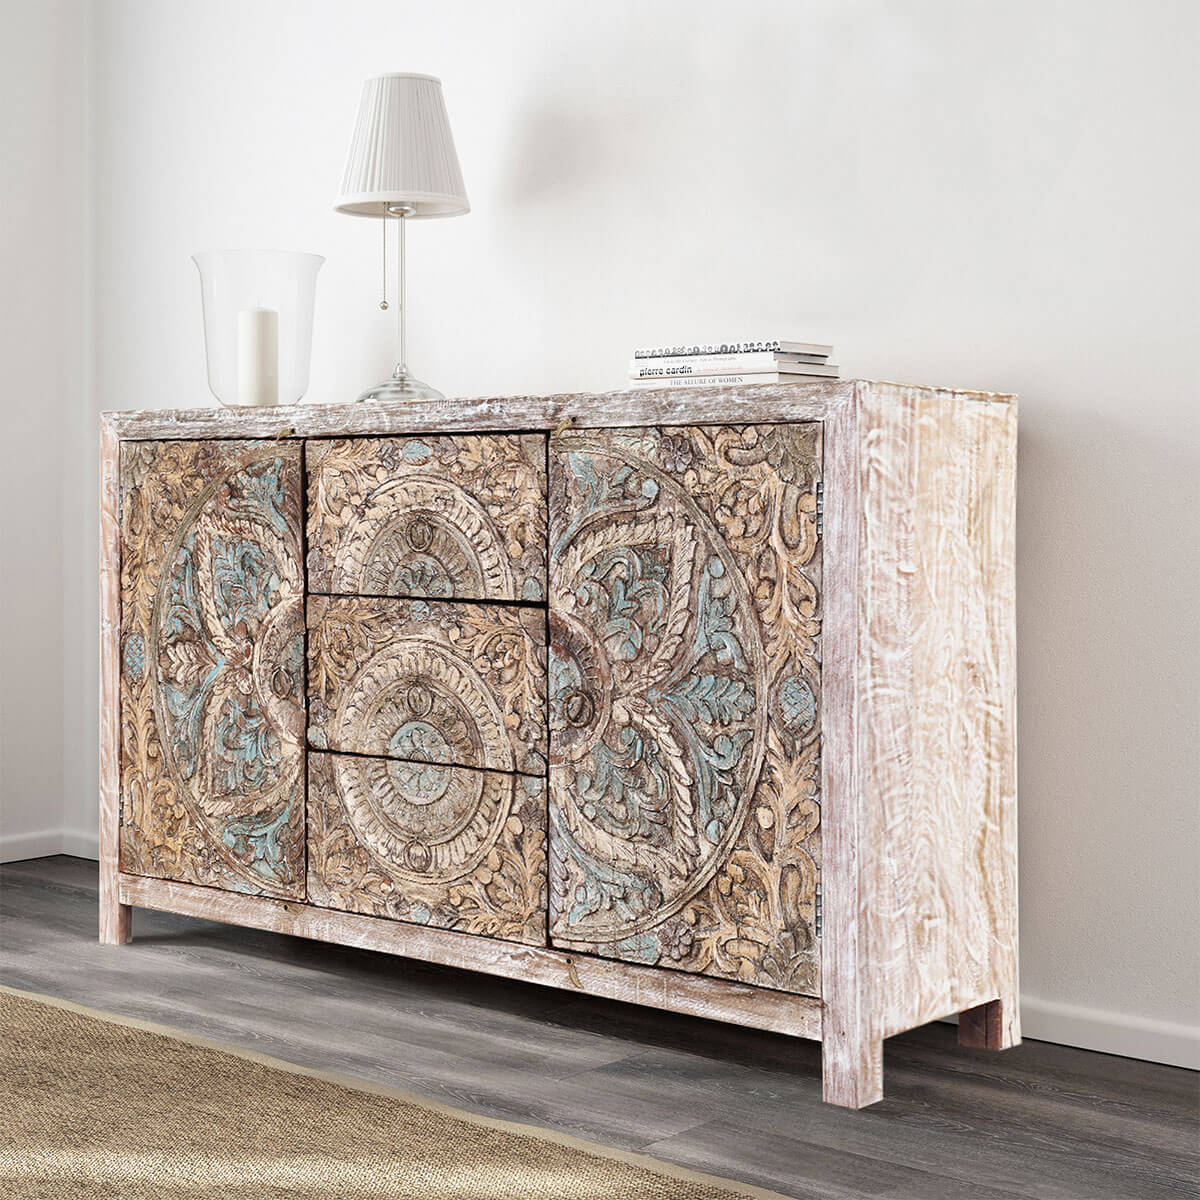 Avenal Floral Mandalas Solid Wood Hand Carved Accent Buffet Cabinet